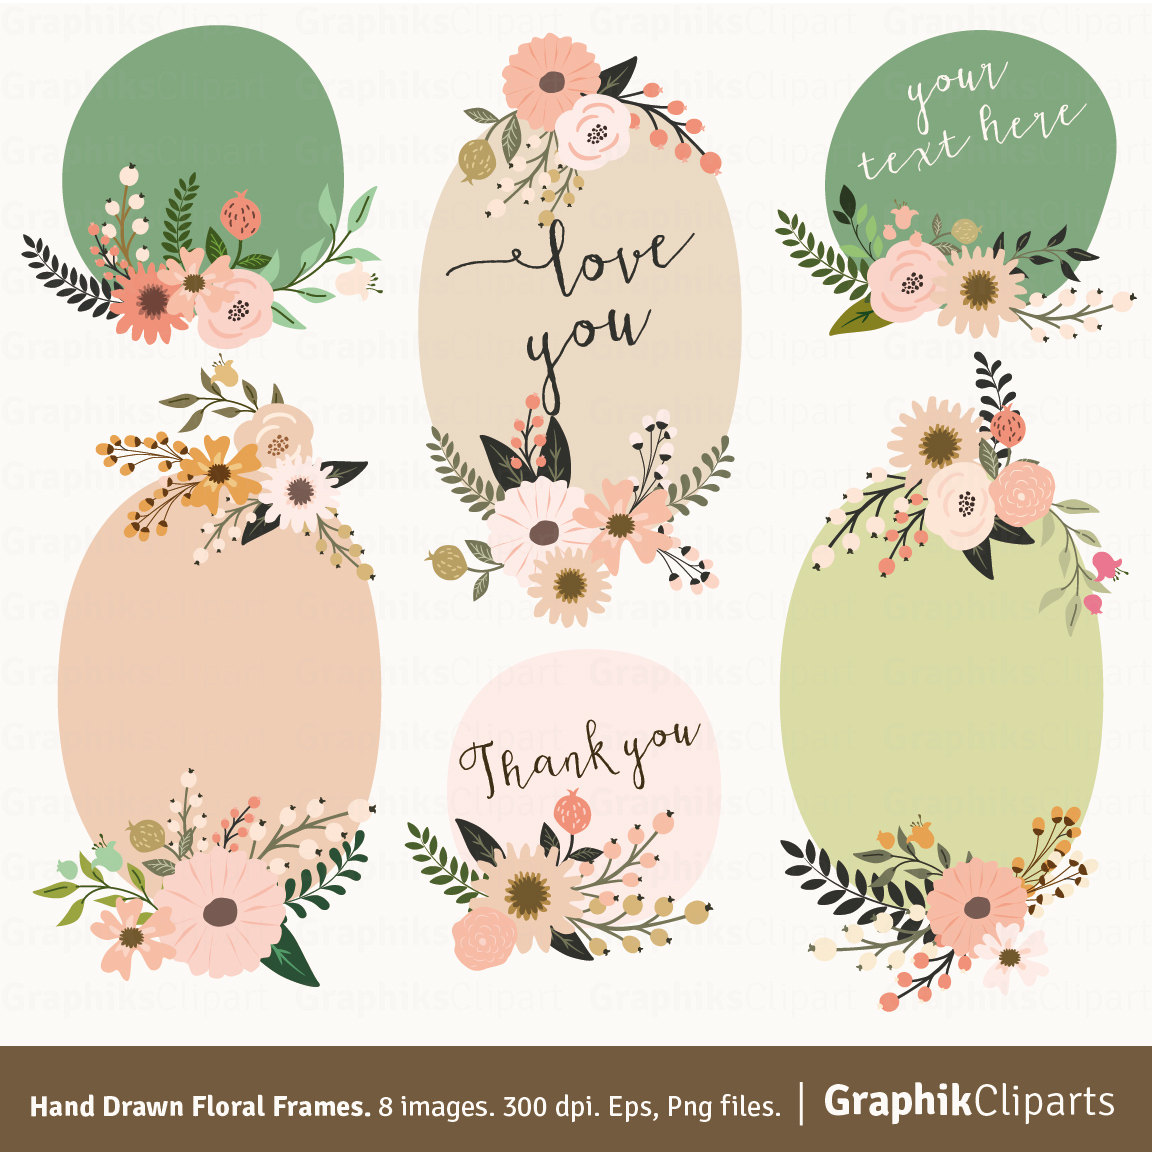 Hand drawn floral frames. Rustic clipart